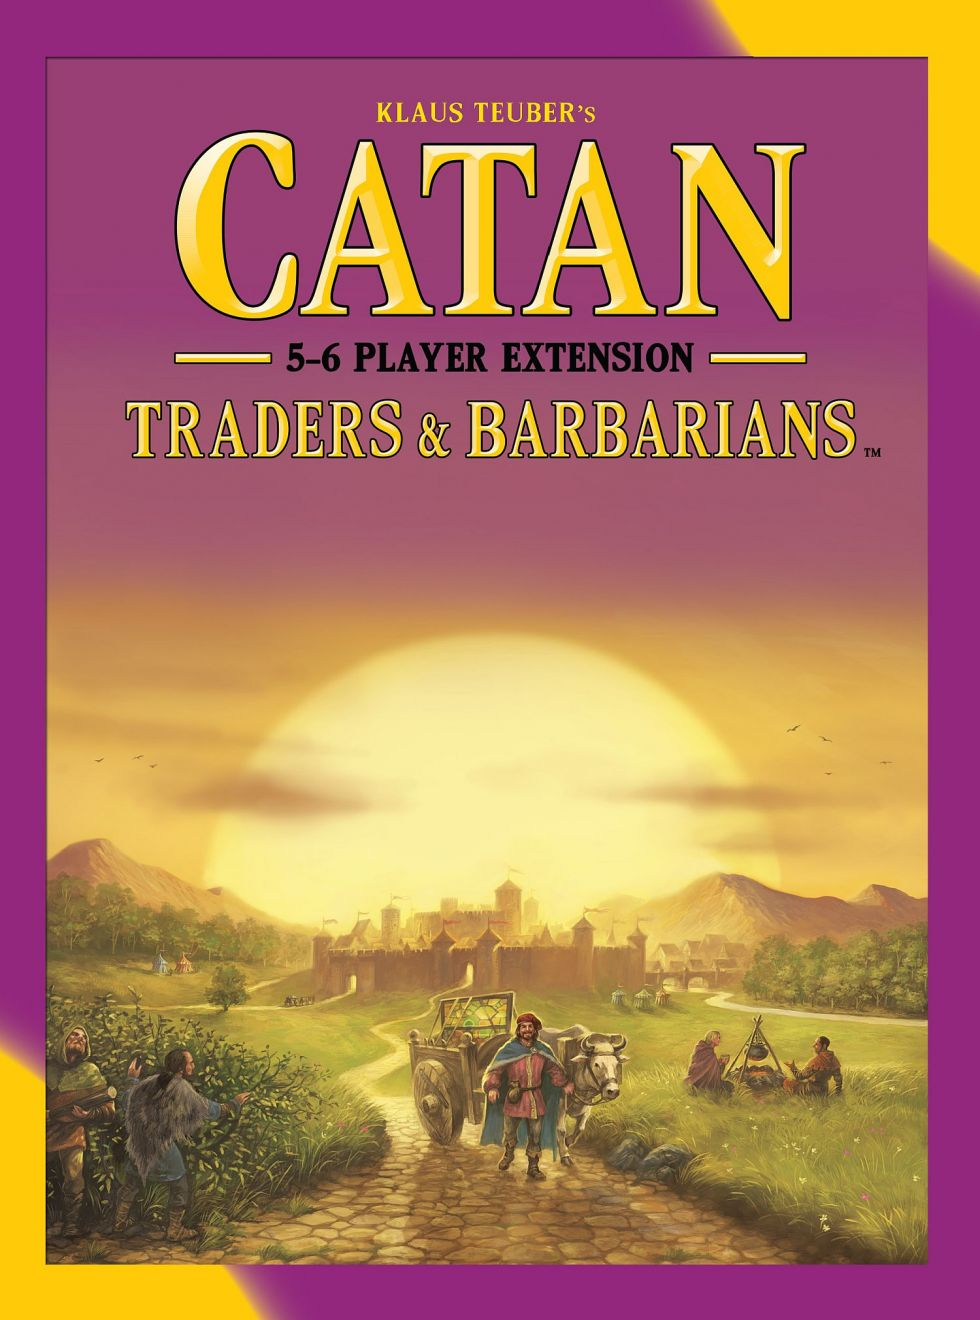 Catan - Traders & Barbarians Expansion - 5-6 Player Extension 5th Edition